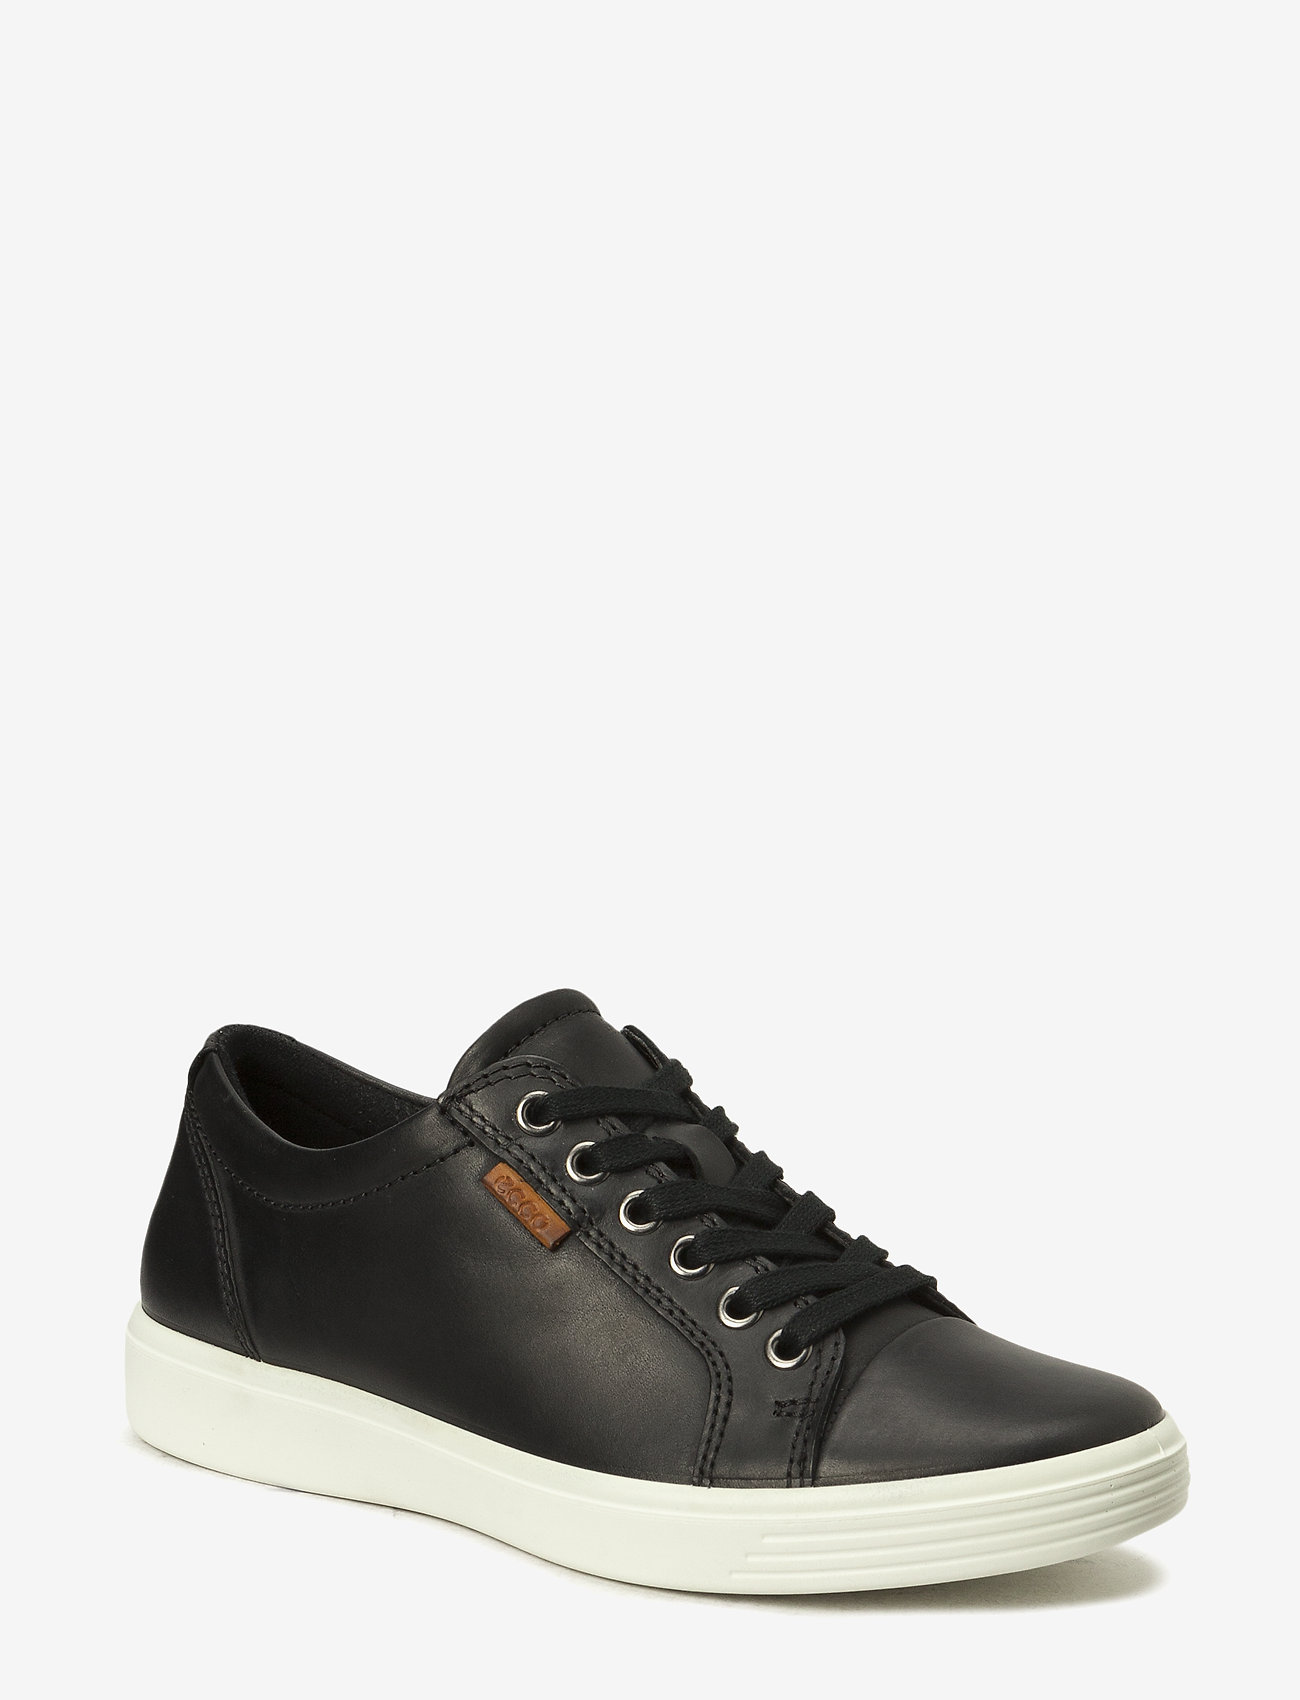 ECCO - S7 TEEN - sneakers - black - 0